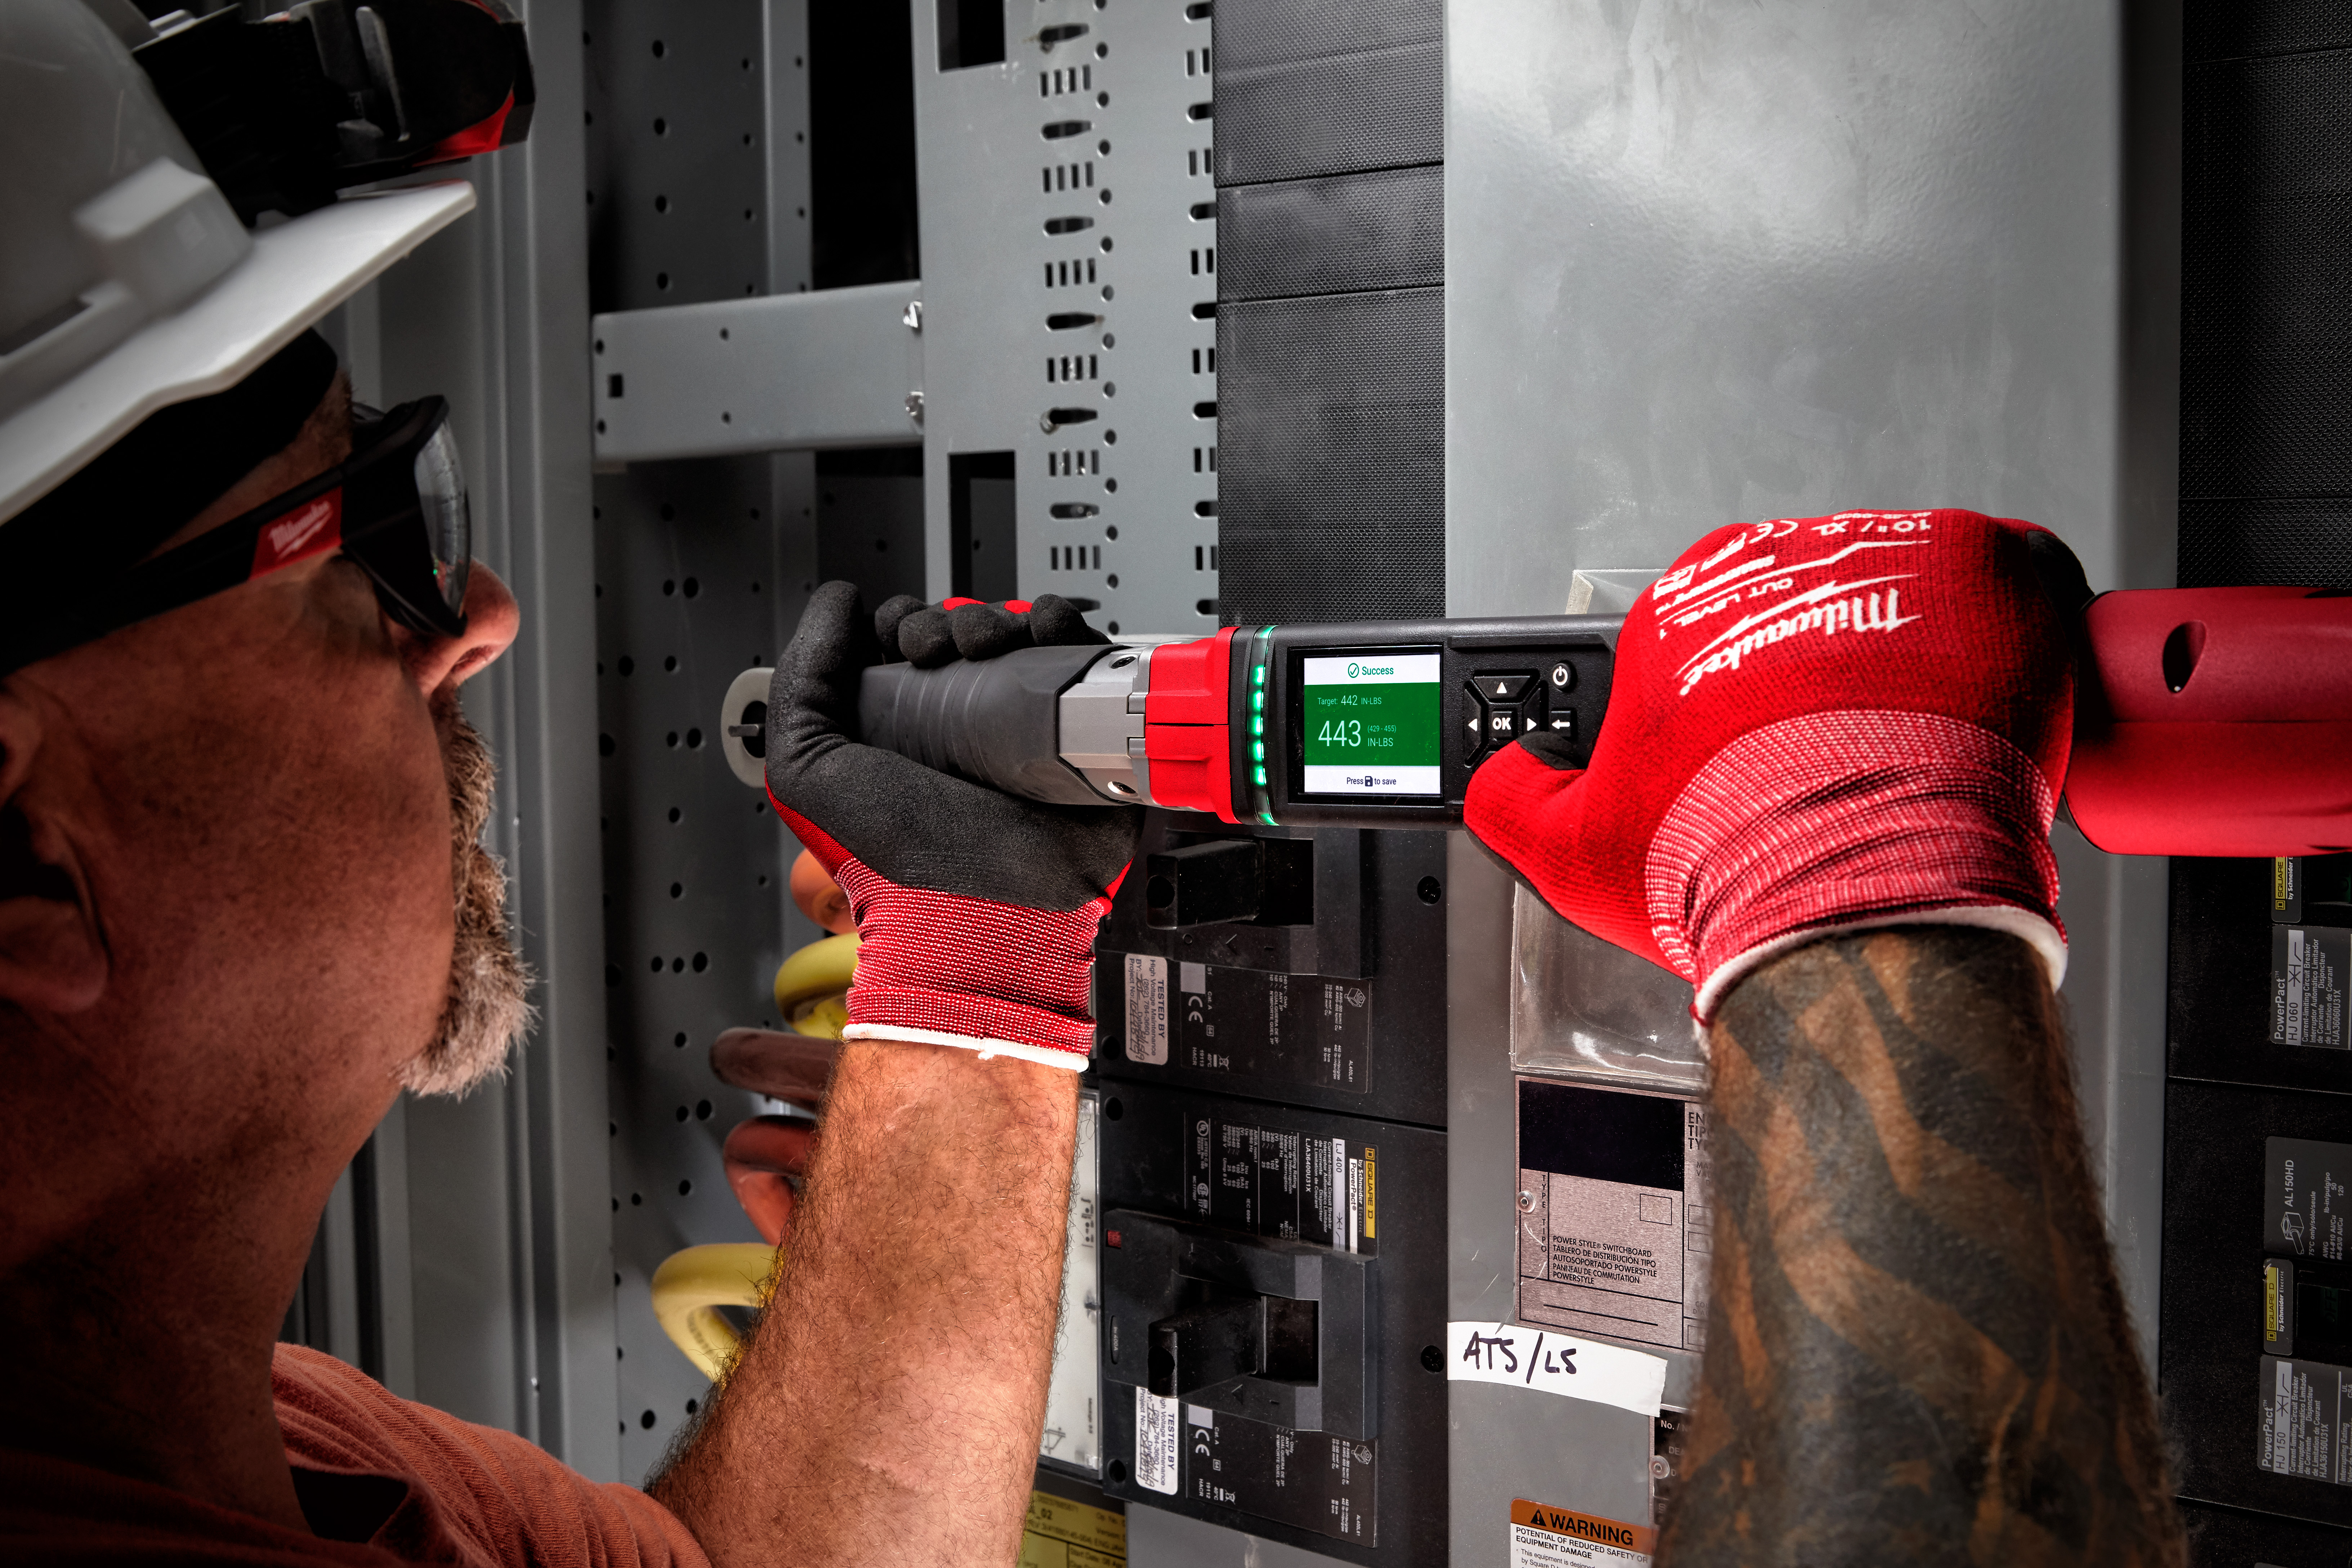 An electrical contractor uses a Milwaukee digital torque wrench to complete installation